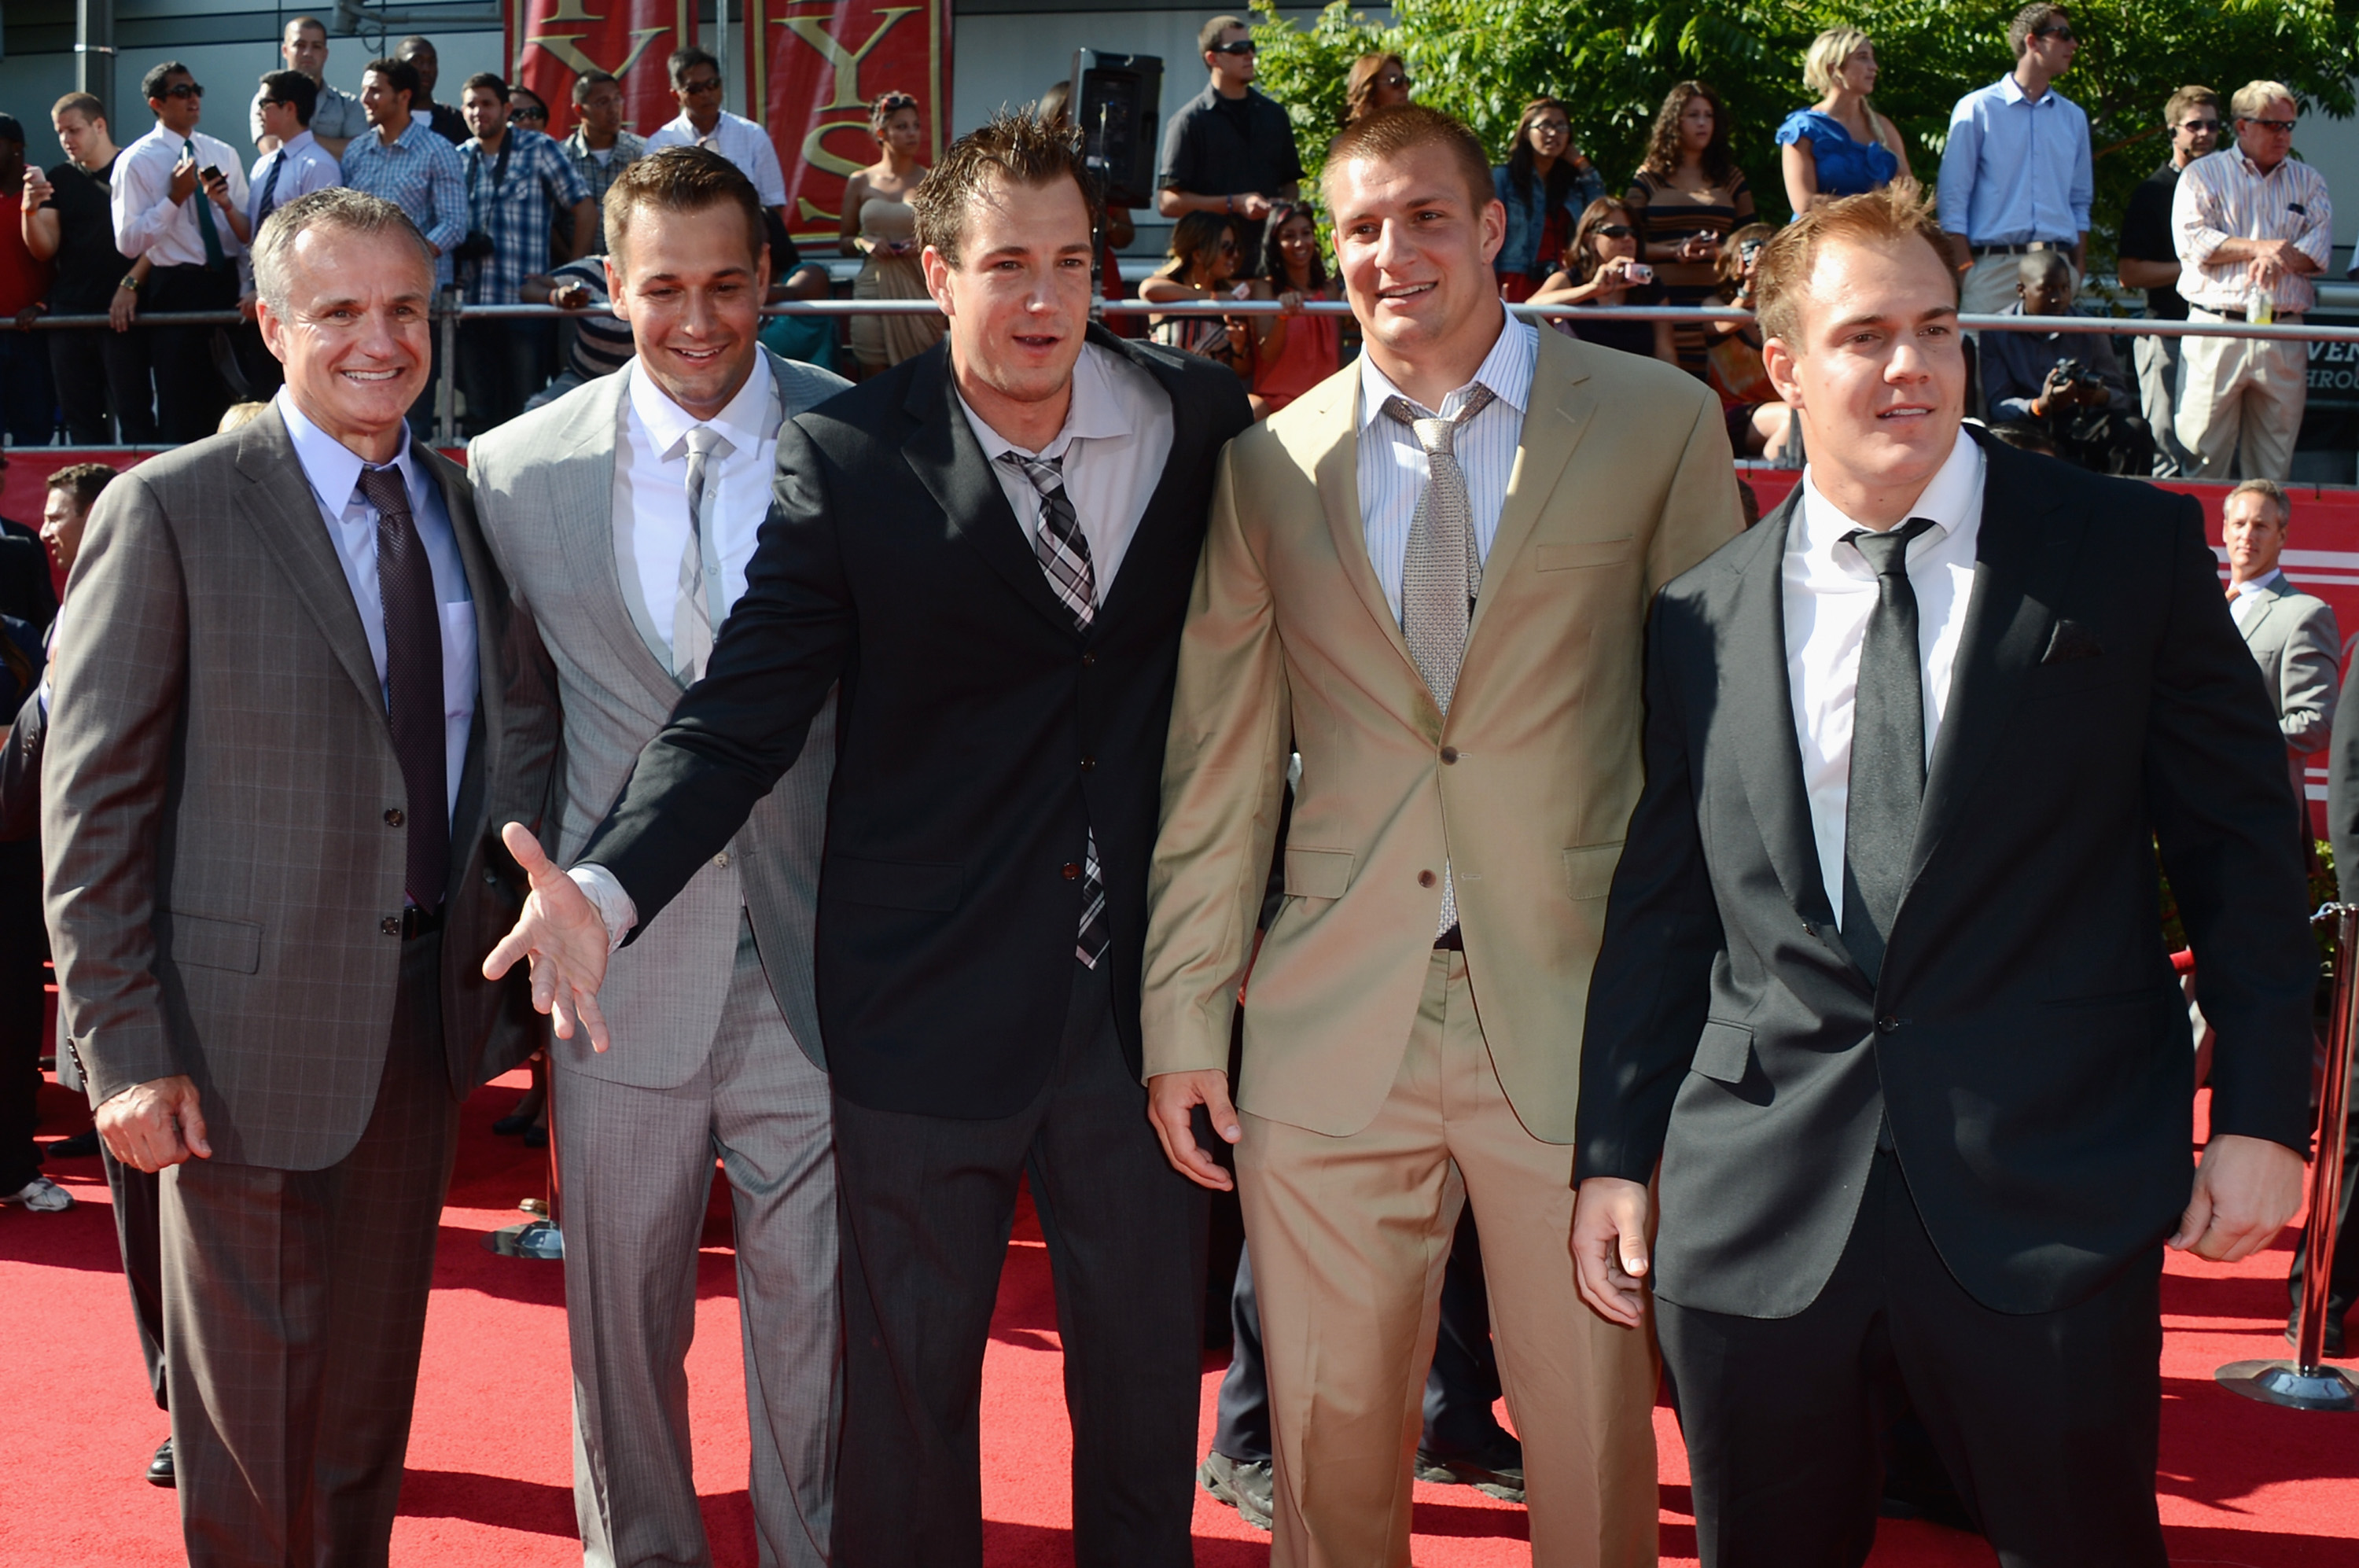 (L-R)Father Gord Gronkowski, Brothers Dan Gronkowski, Gordie Gronkowski, Rob Gronkowski and Glenn Gronkowski arrive at the 2012 ESPY Awards at Nokia Theatre L.A. Live on July 11, 2012 in Los Angeles.